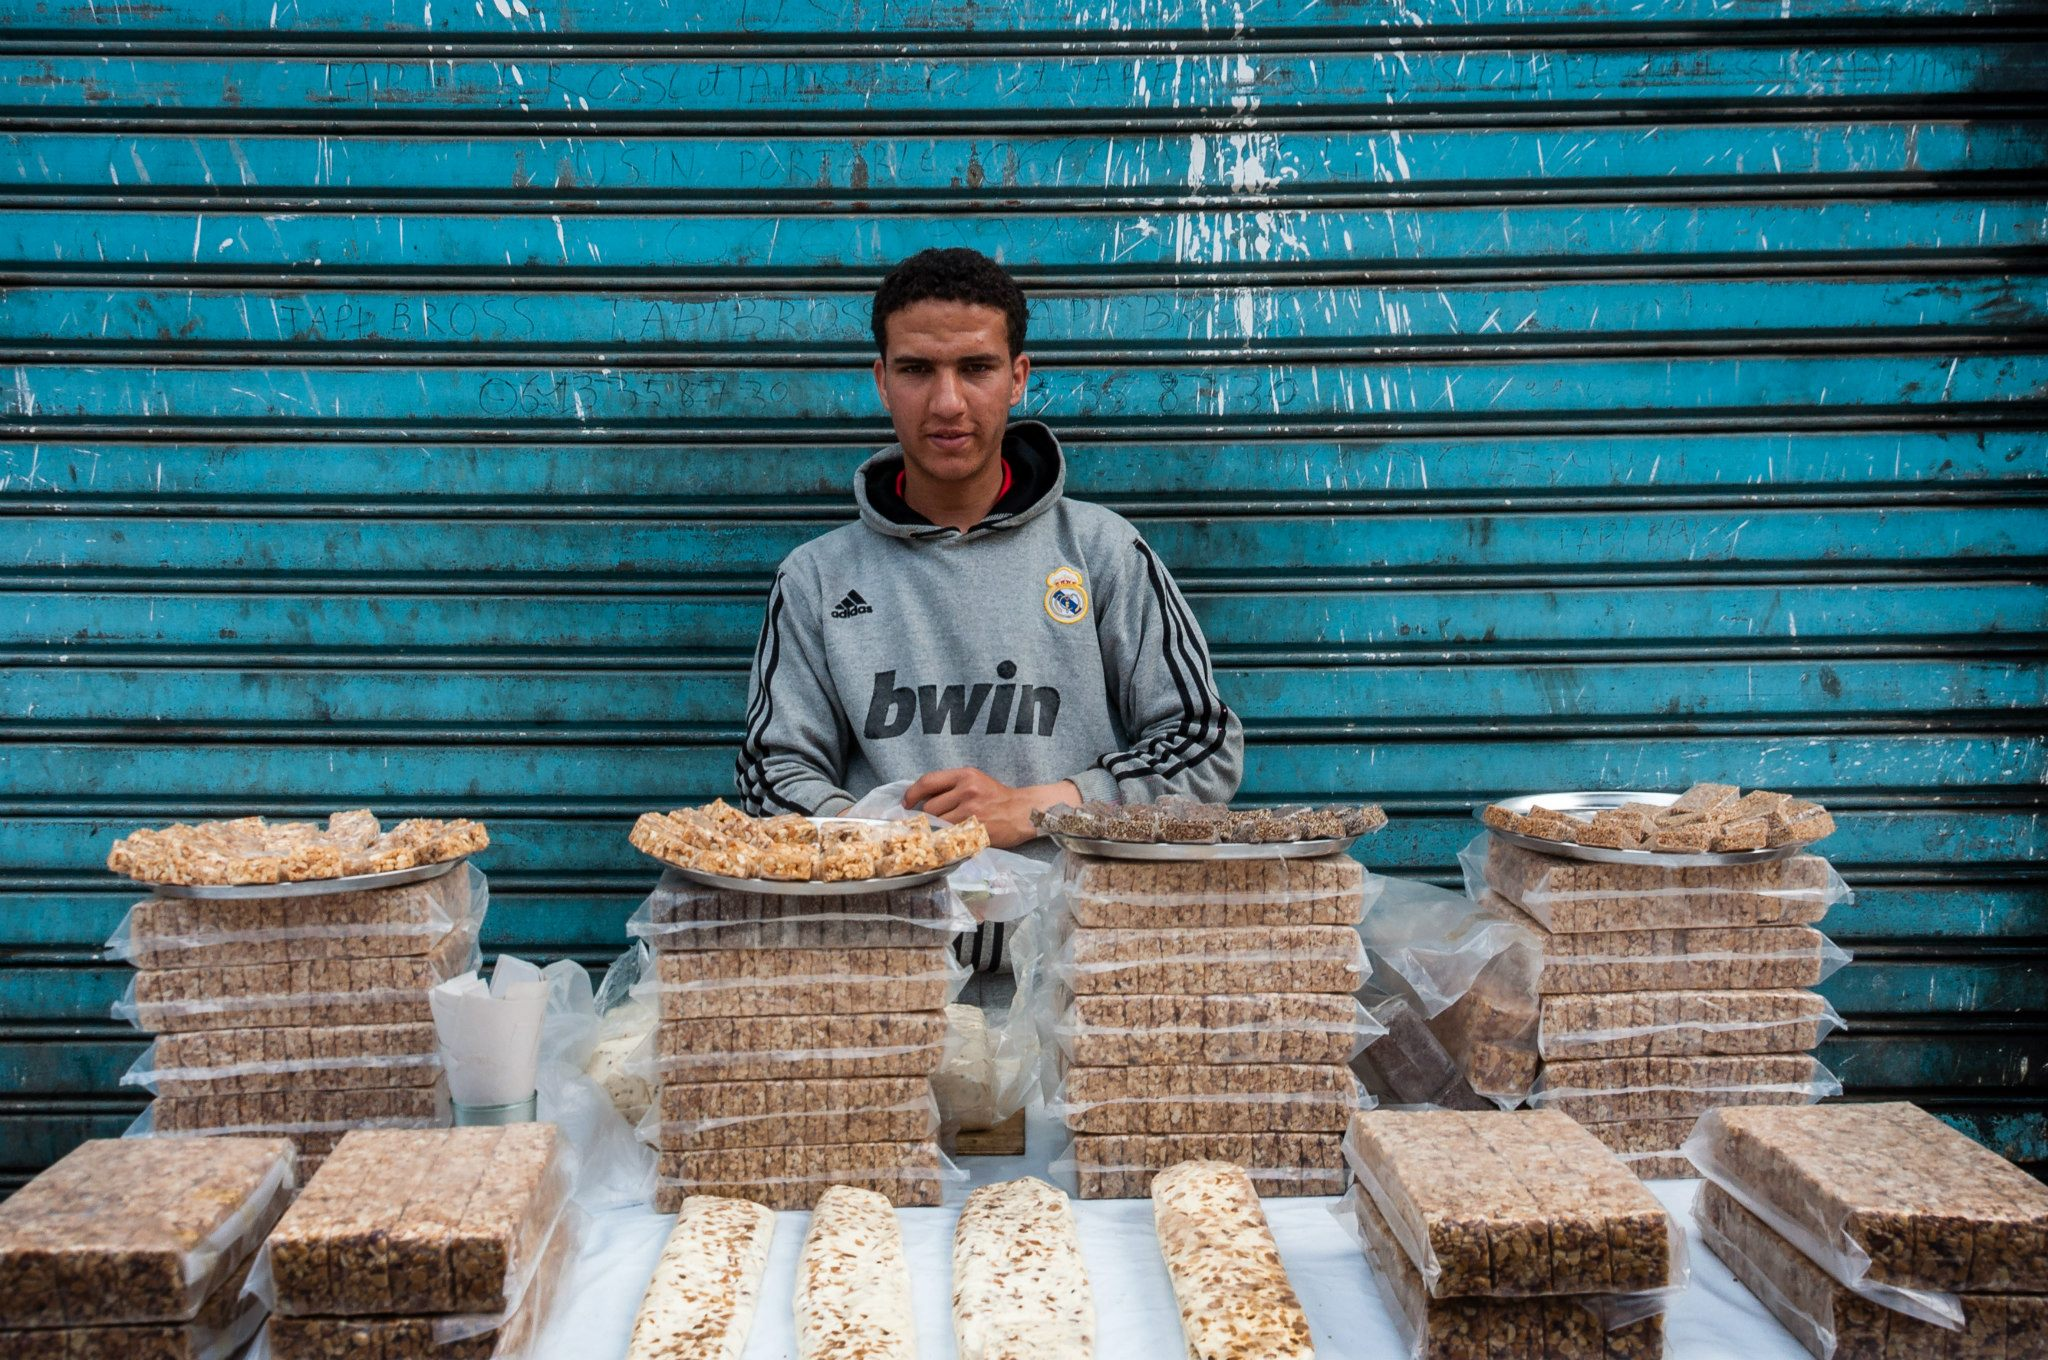 How is like to photograph people in Morocco?